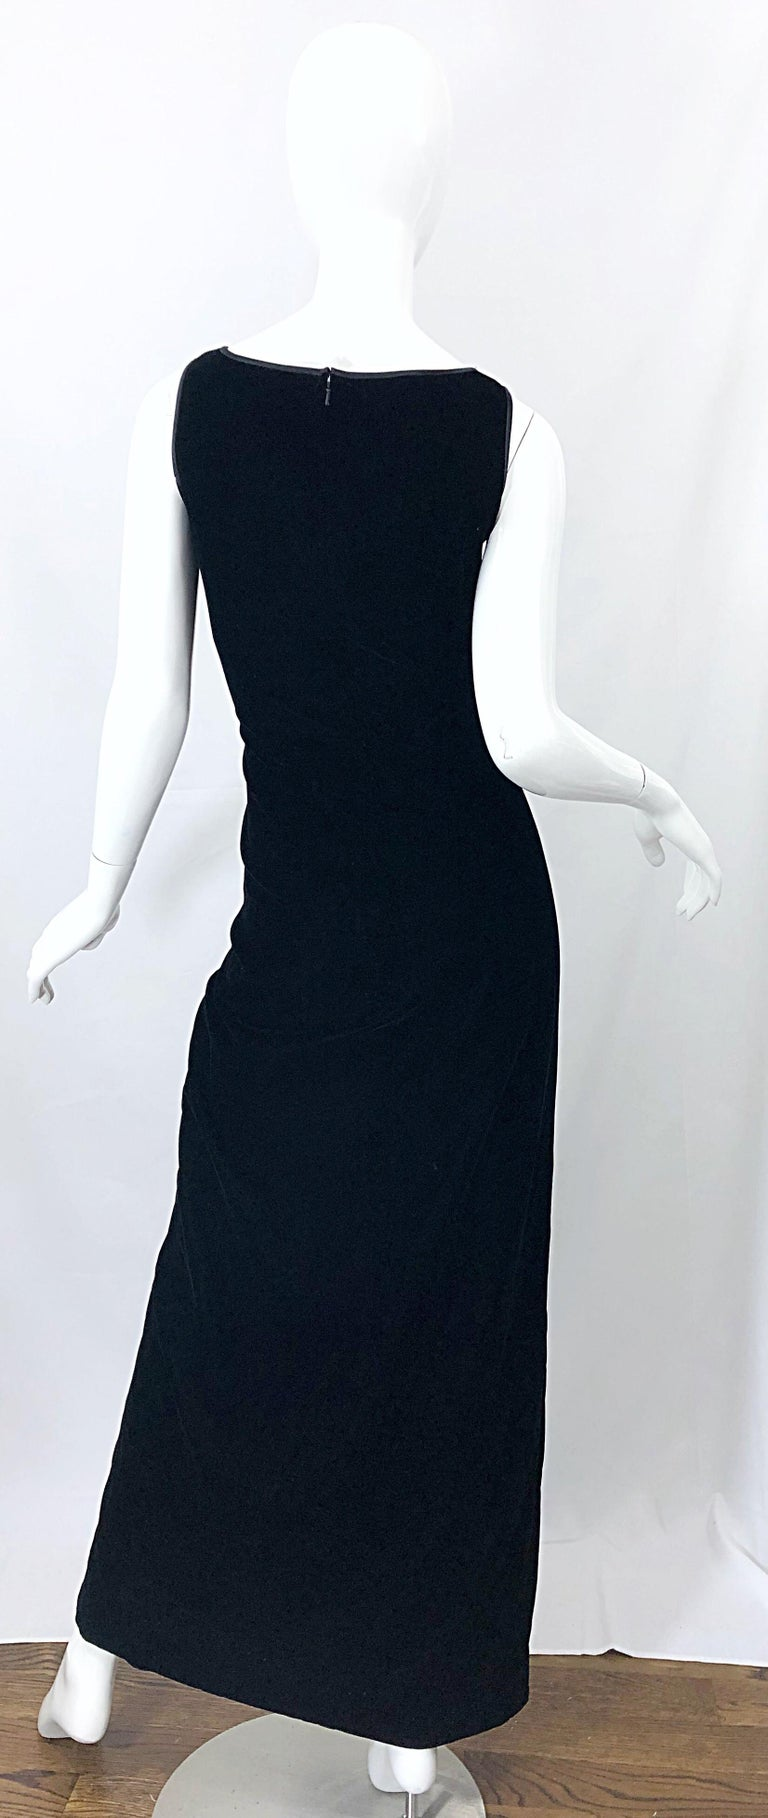 Vintage Bob Mackie Size 14 Black Velvet 1990s Sleeveless Sweetheart 90s Gown For Sale 8